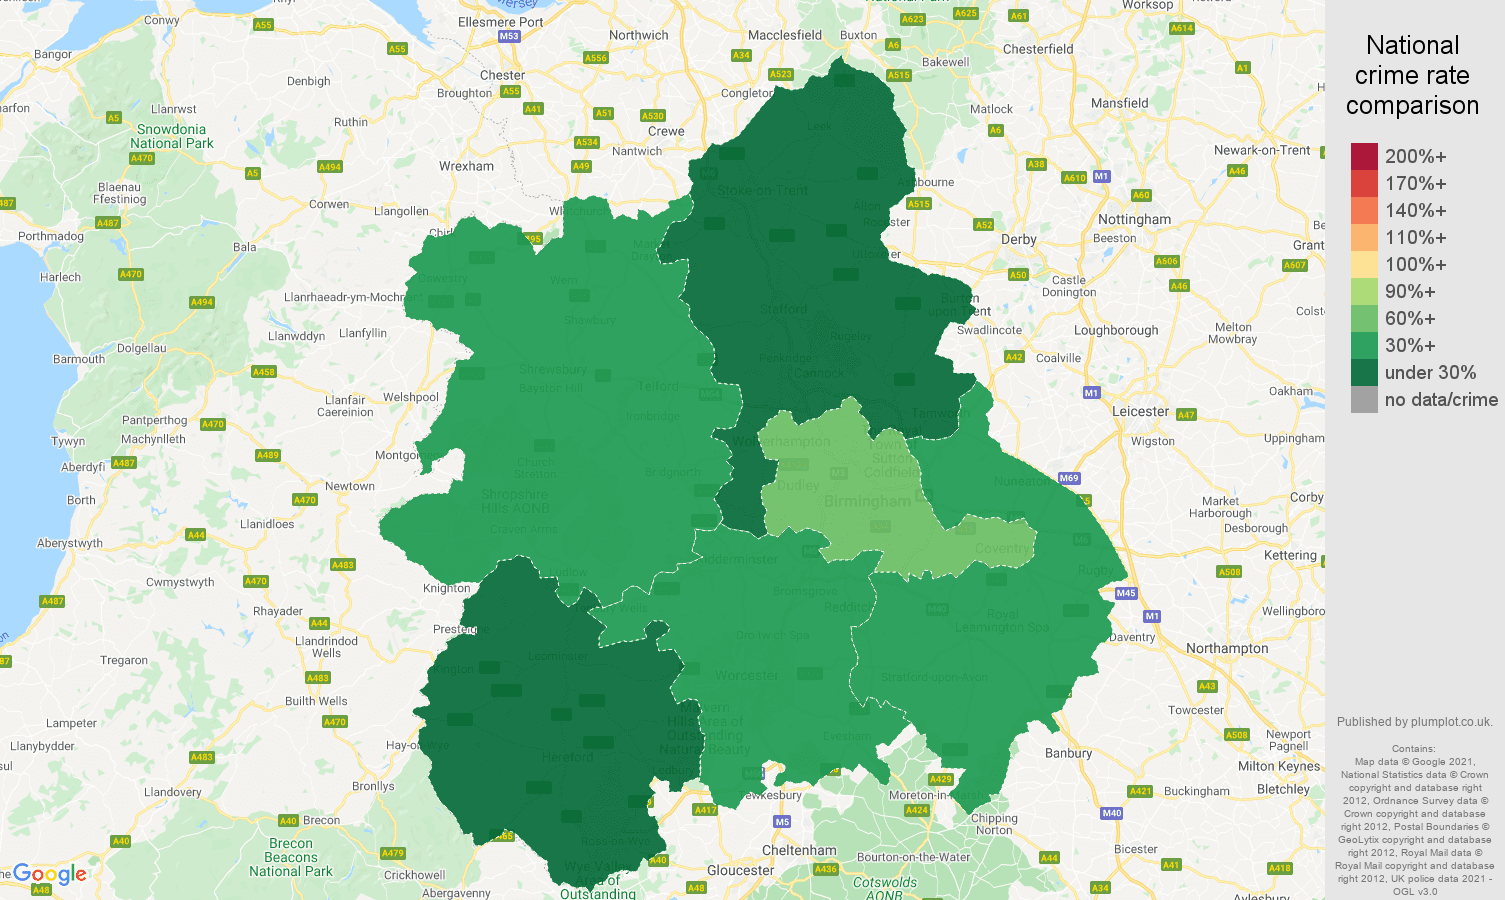 West Midlands theft from the person crime rate comparison map